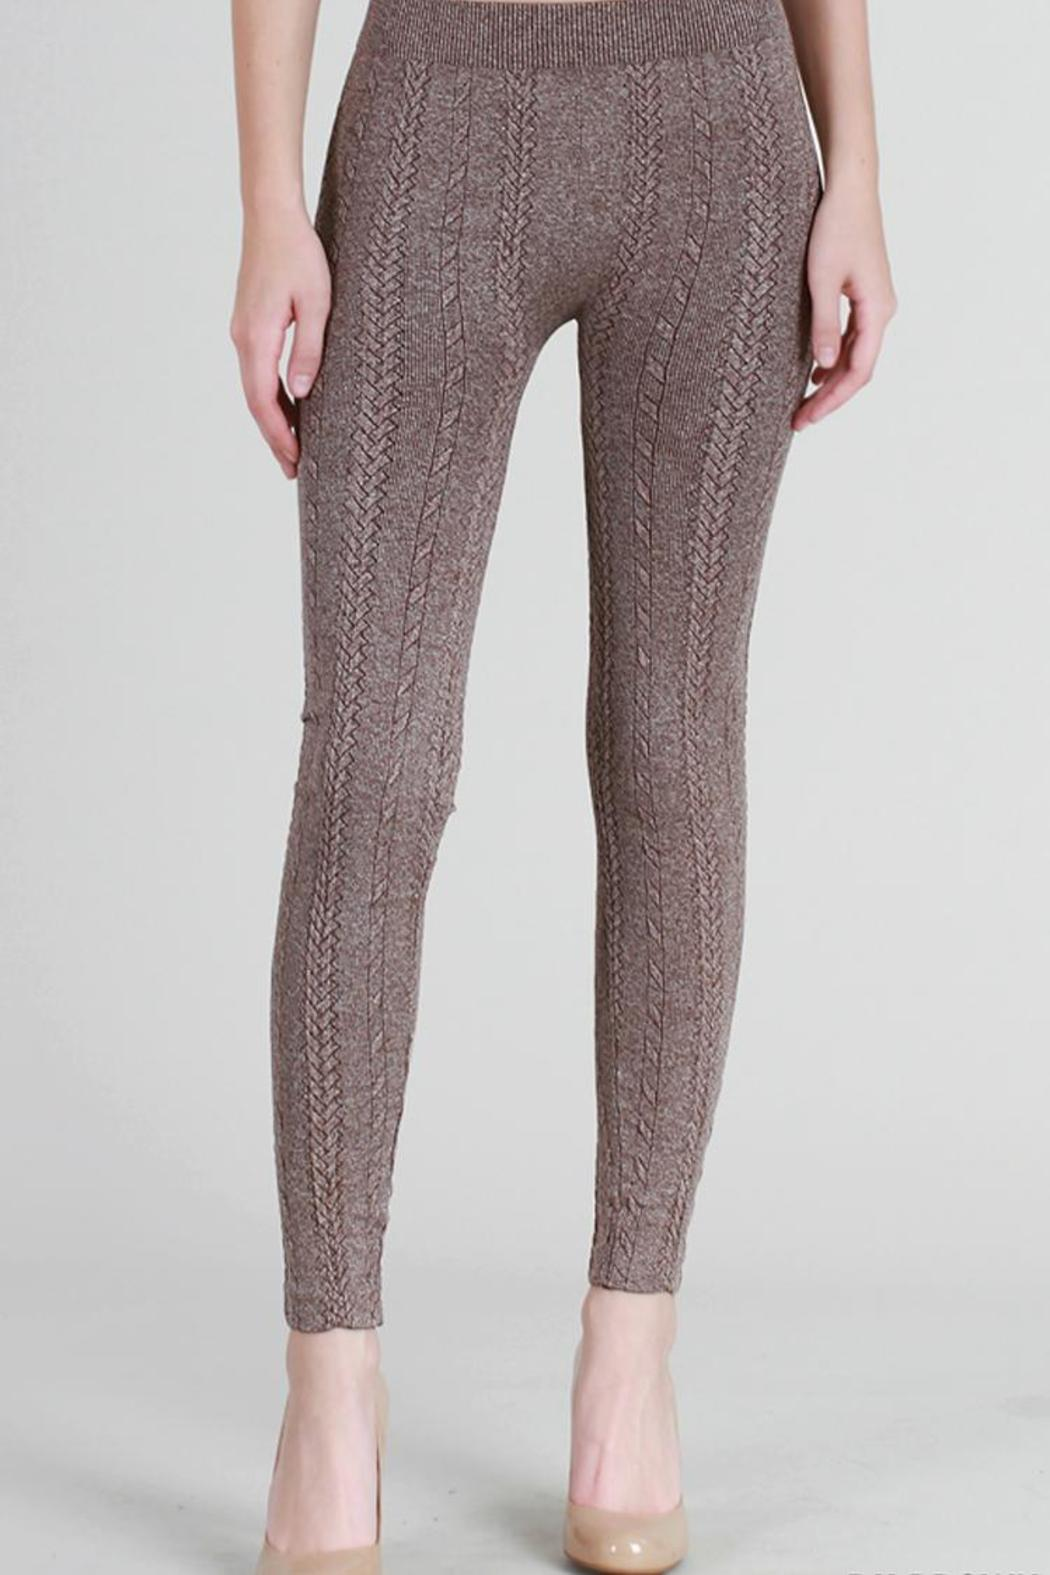 Cable knit leggings – Gift from winters